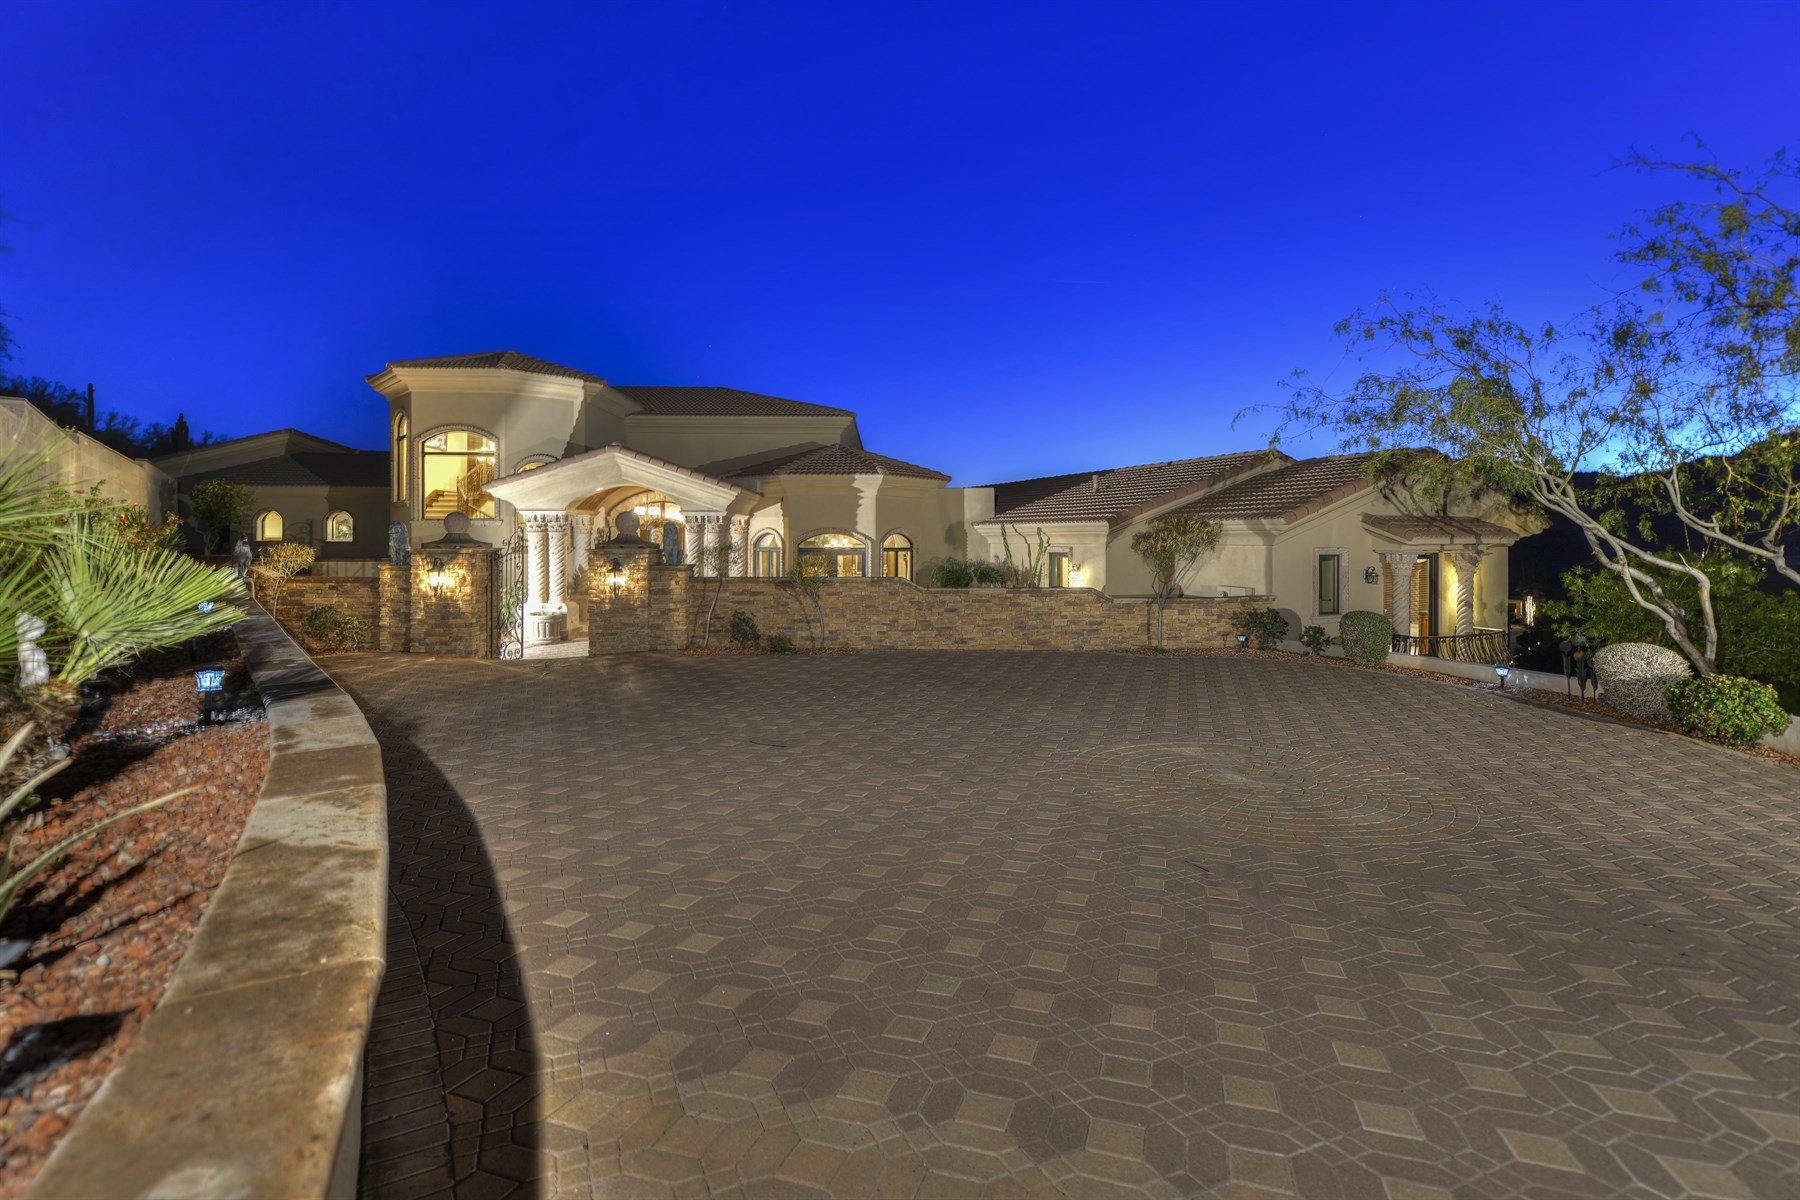 Casa para uma família para Venda às Beautiful European-inspired estate 7024 N Longlook Rd Paradise Valley, Arizona, 85253 Estados Unidos